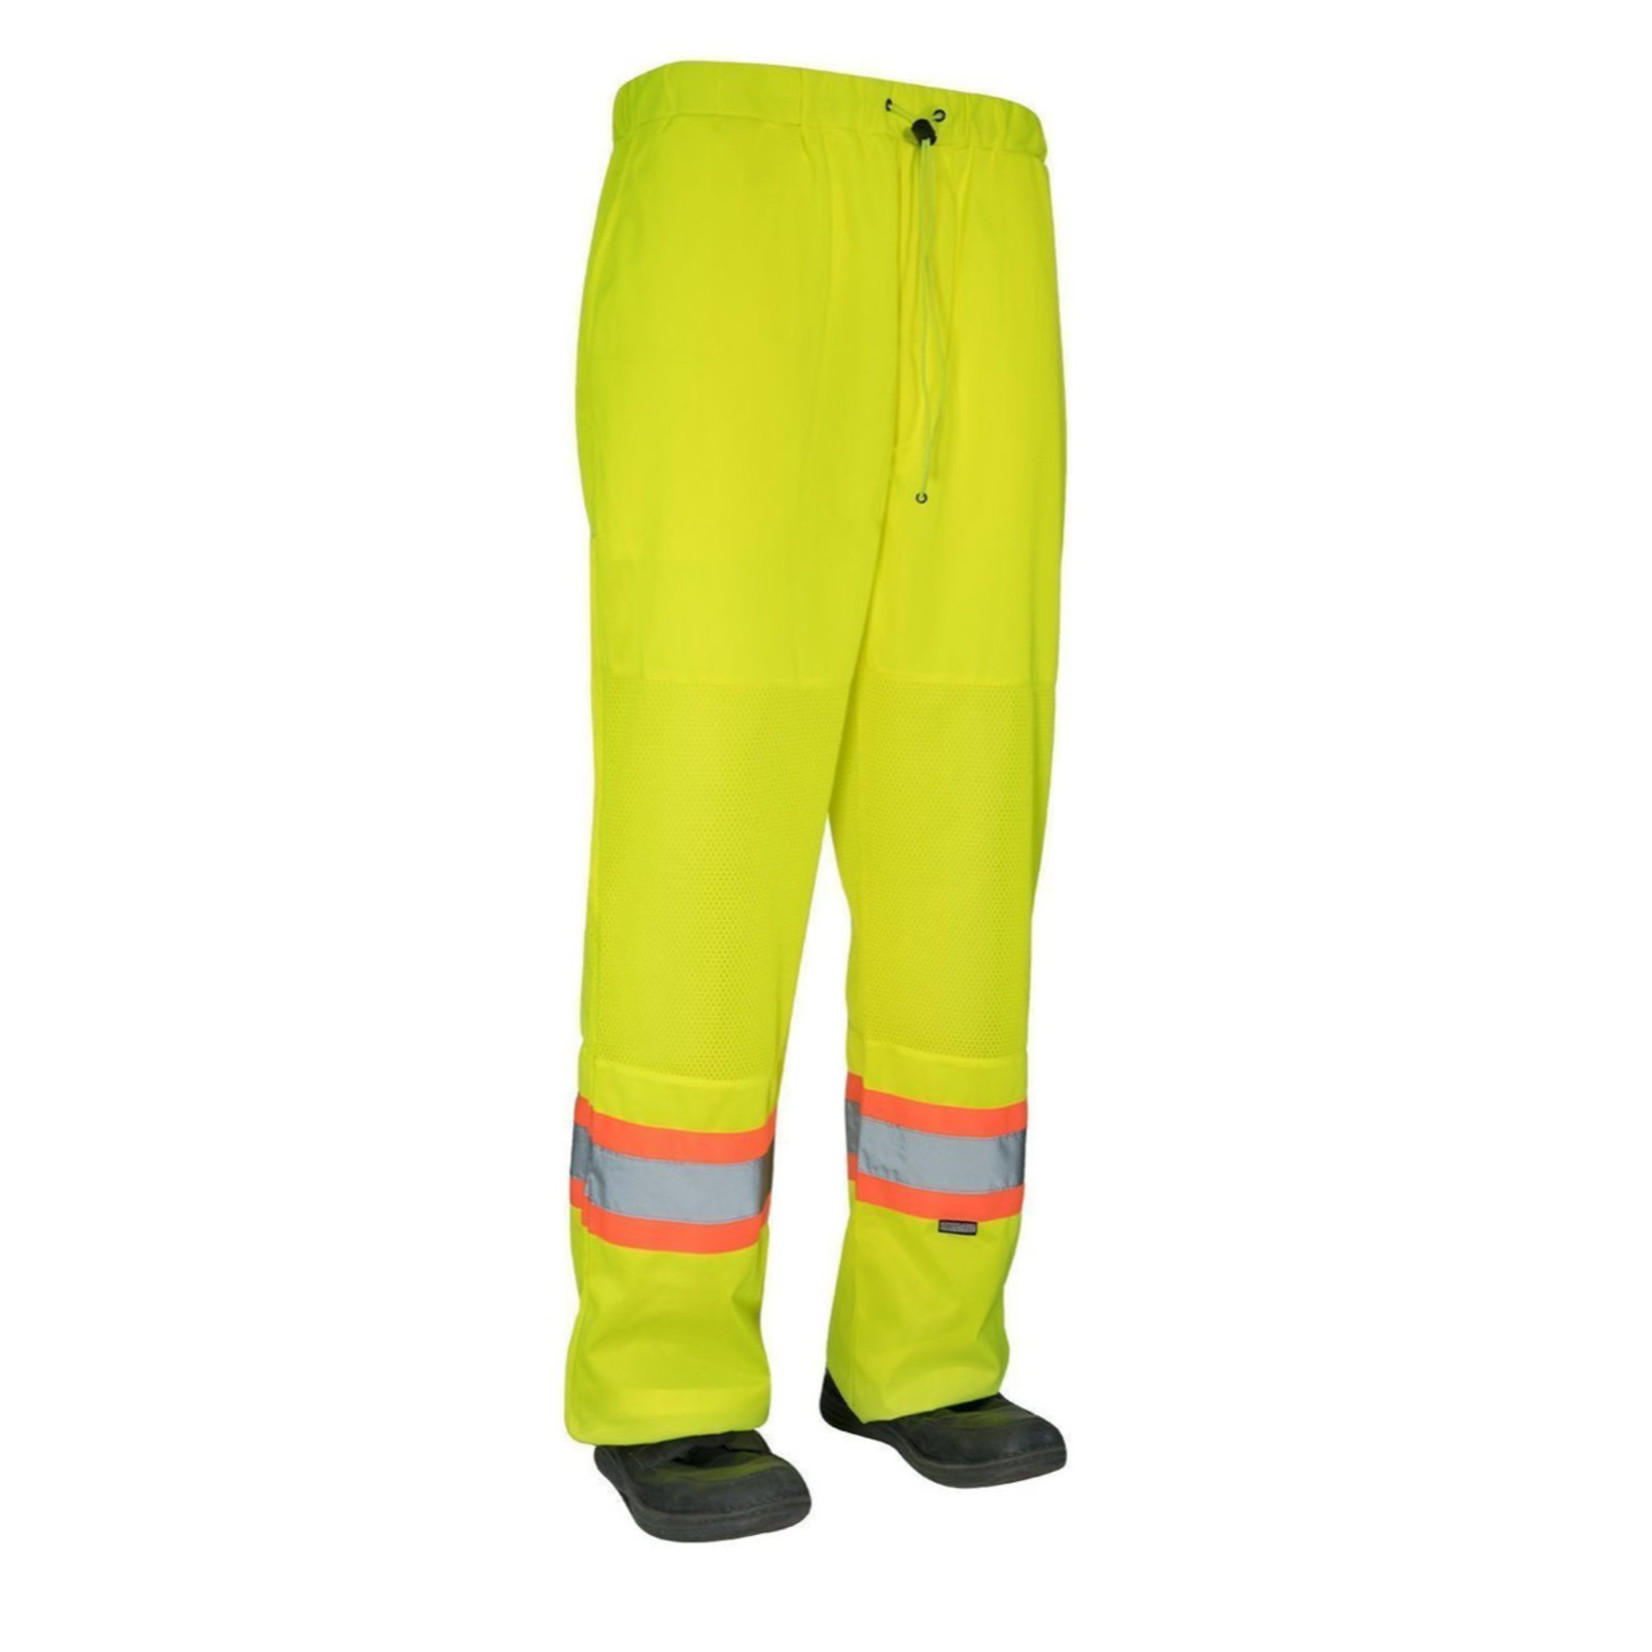 Forcefield Hi Vis Safety Tricot Traffic Pants with Vented Legs and Elastic Waist